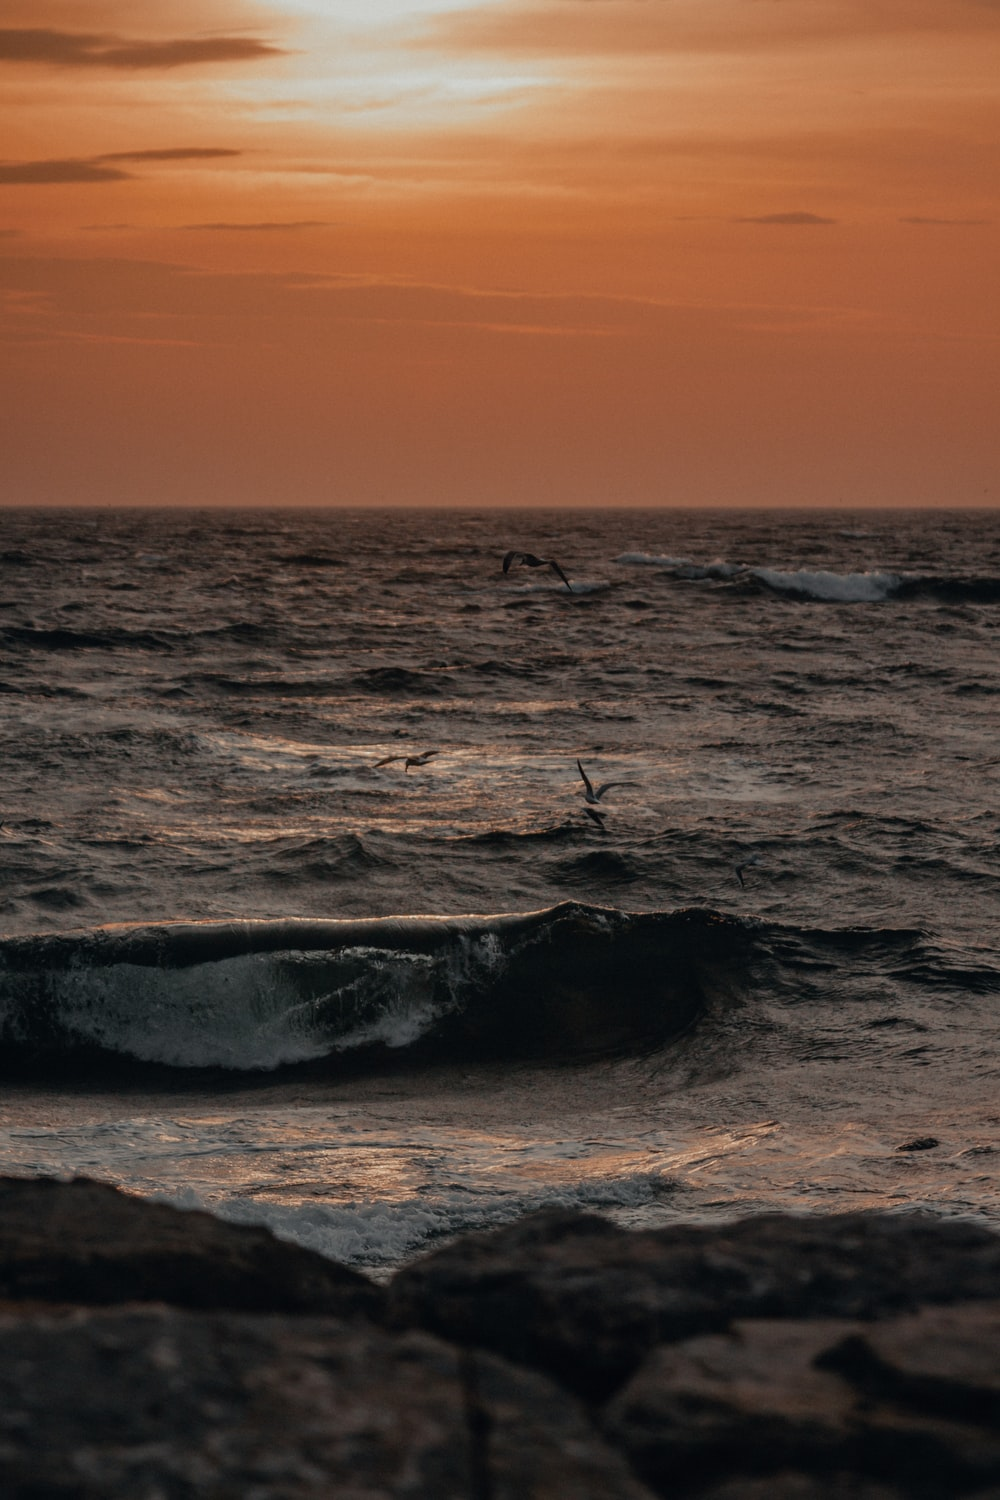 person surfing on sea waves during sunset